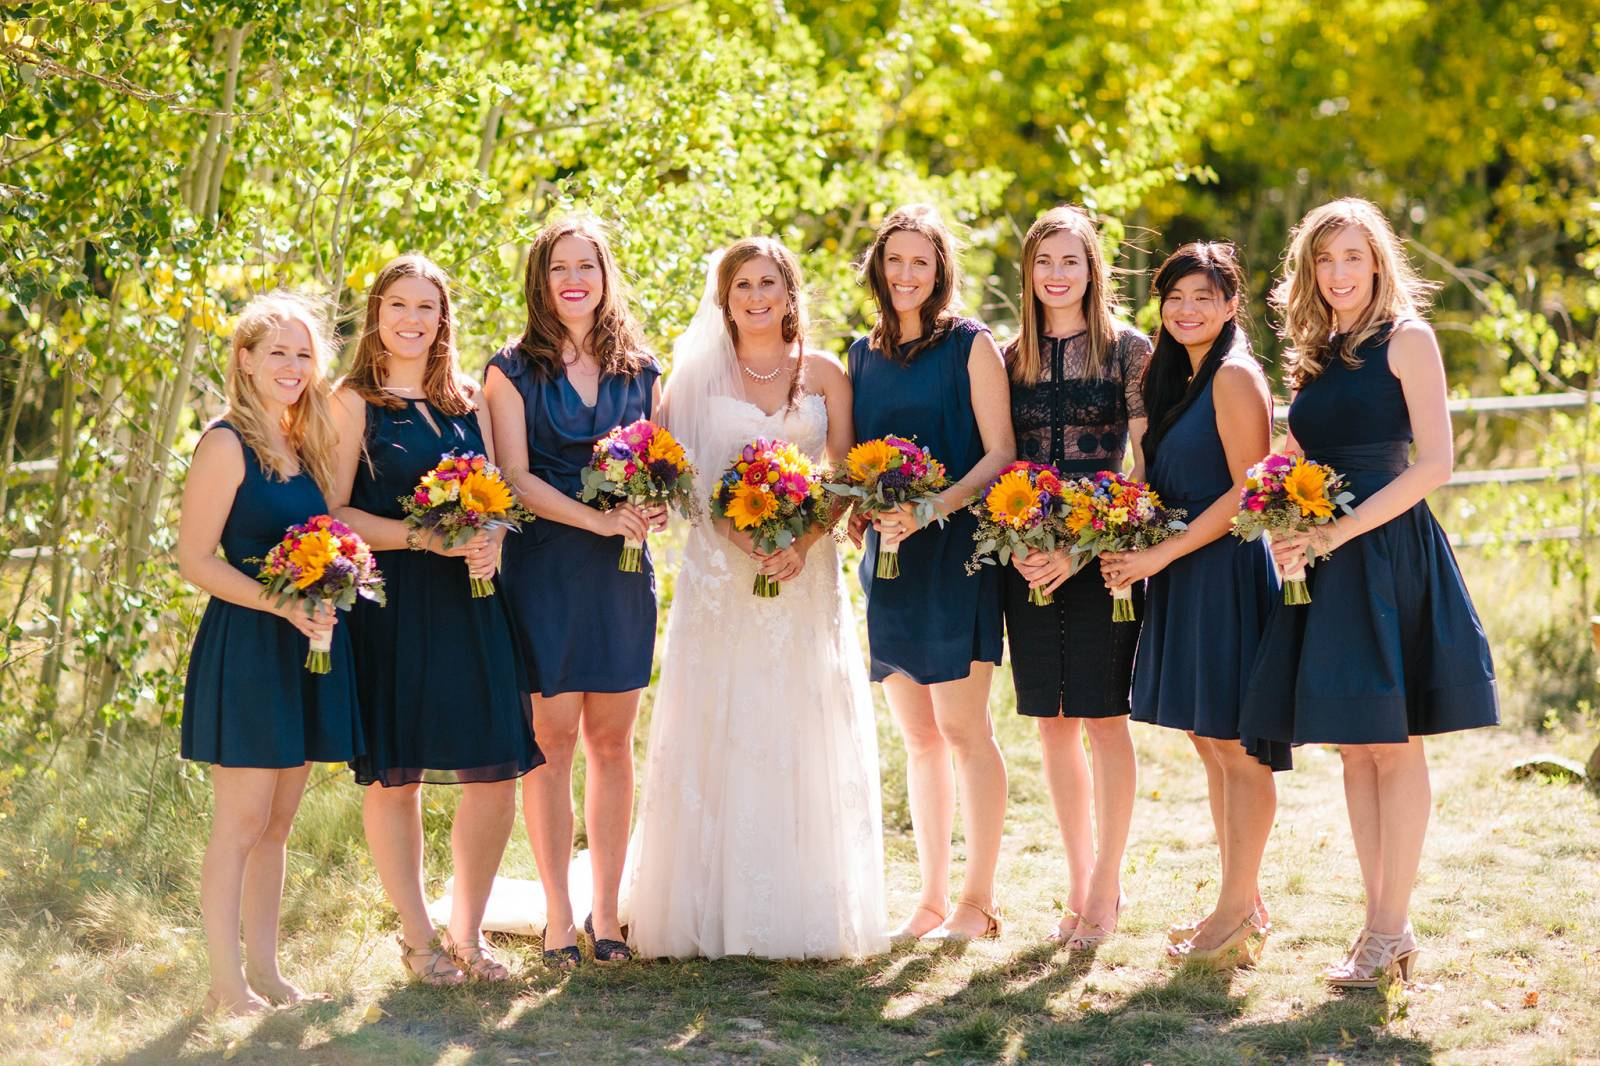 bride and bridesmaids in short navy blue dresses holding summer floral bouquets at the Wild Basin Lo